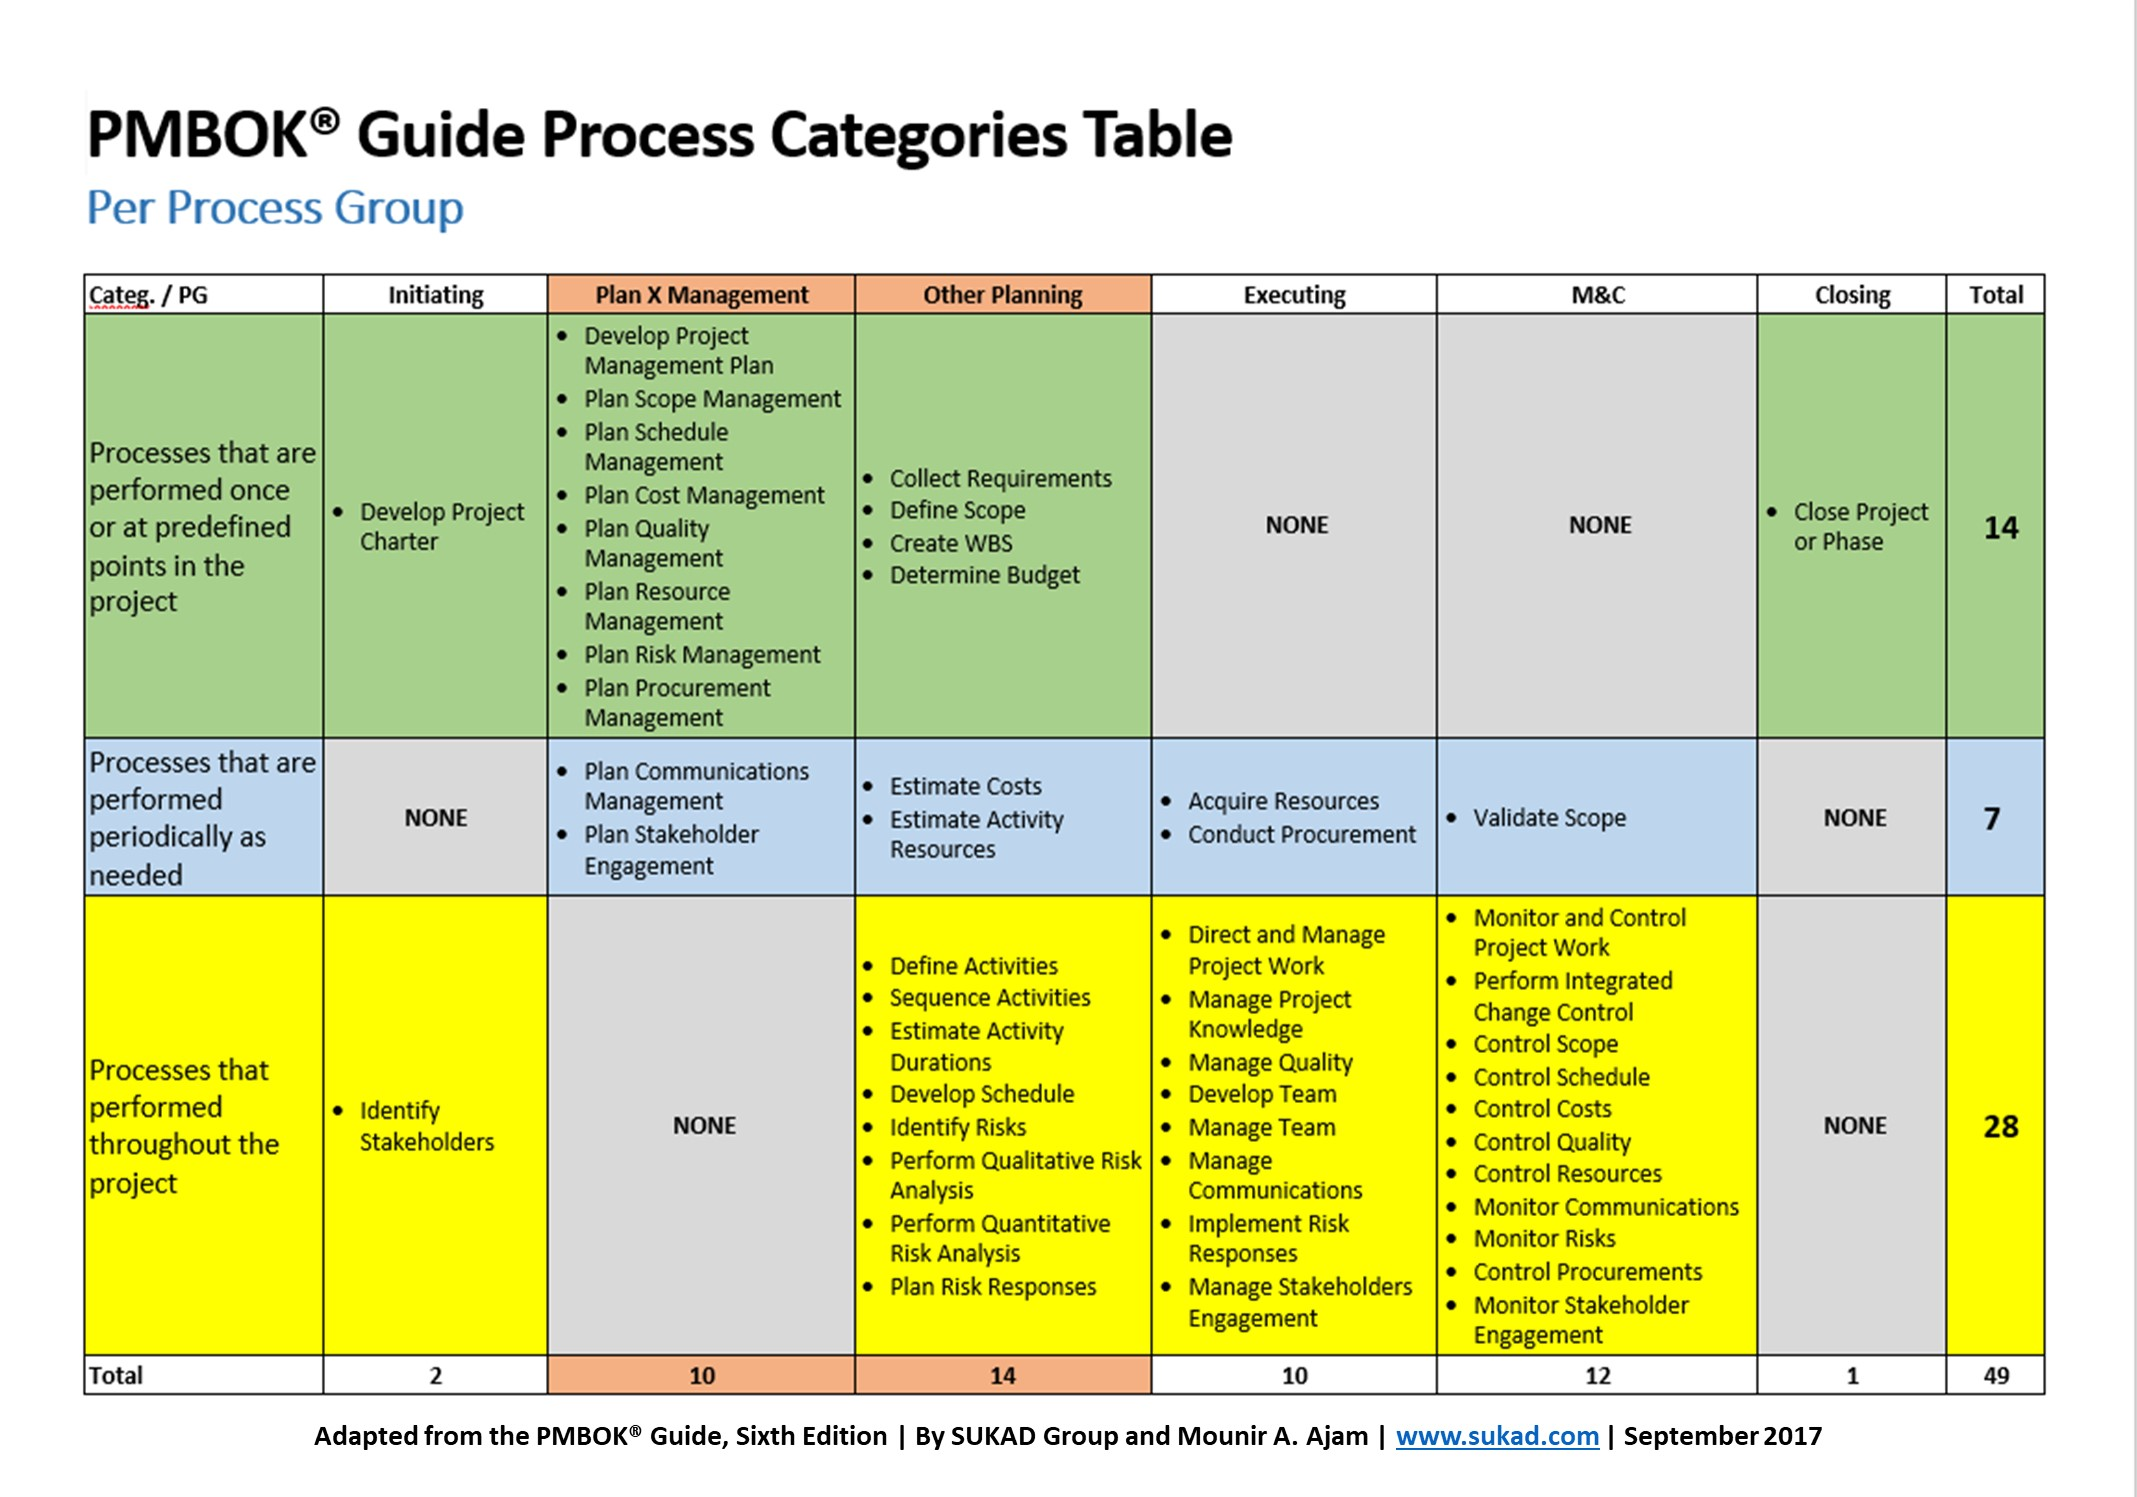 monitor and control risks Description and definition of the pmi-process 'risk monitoring and control'.